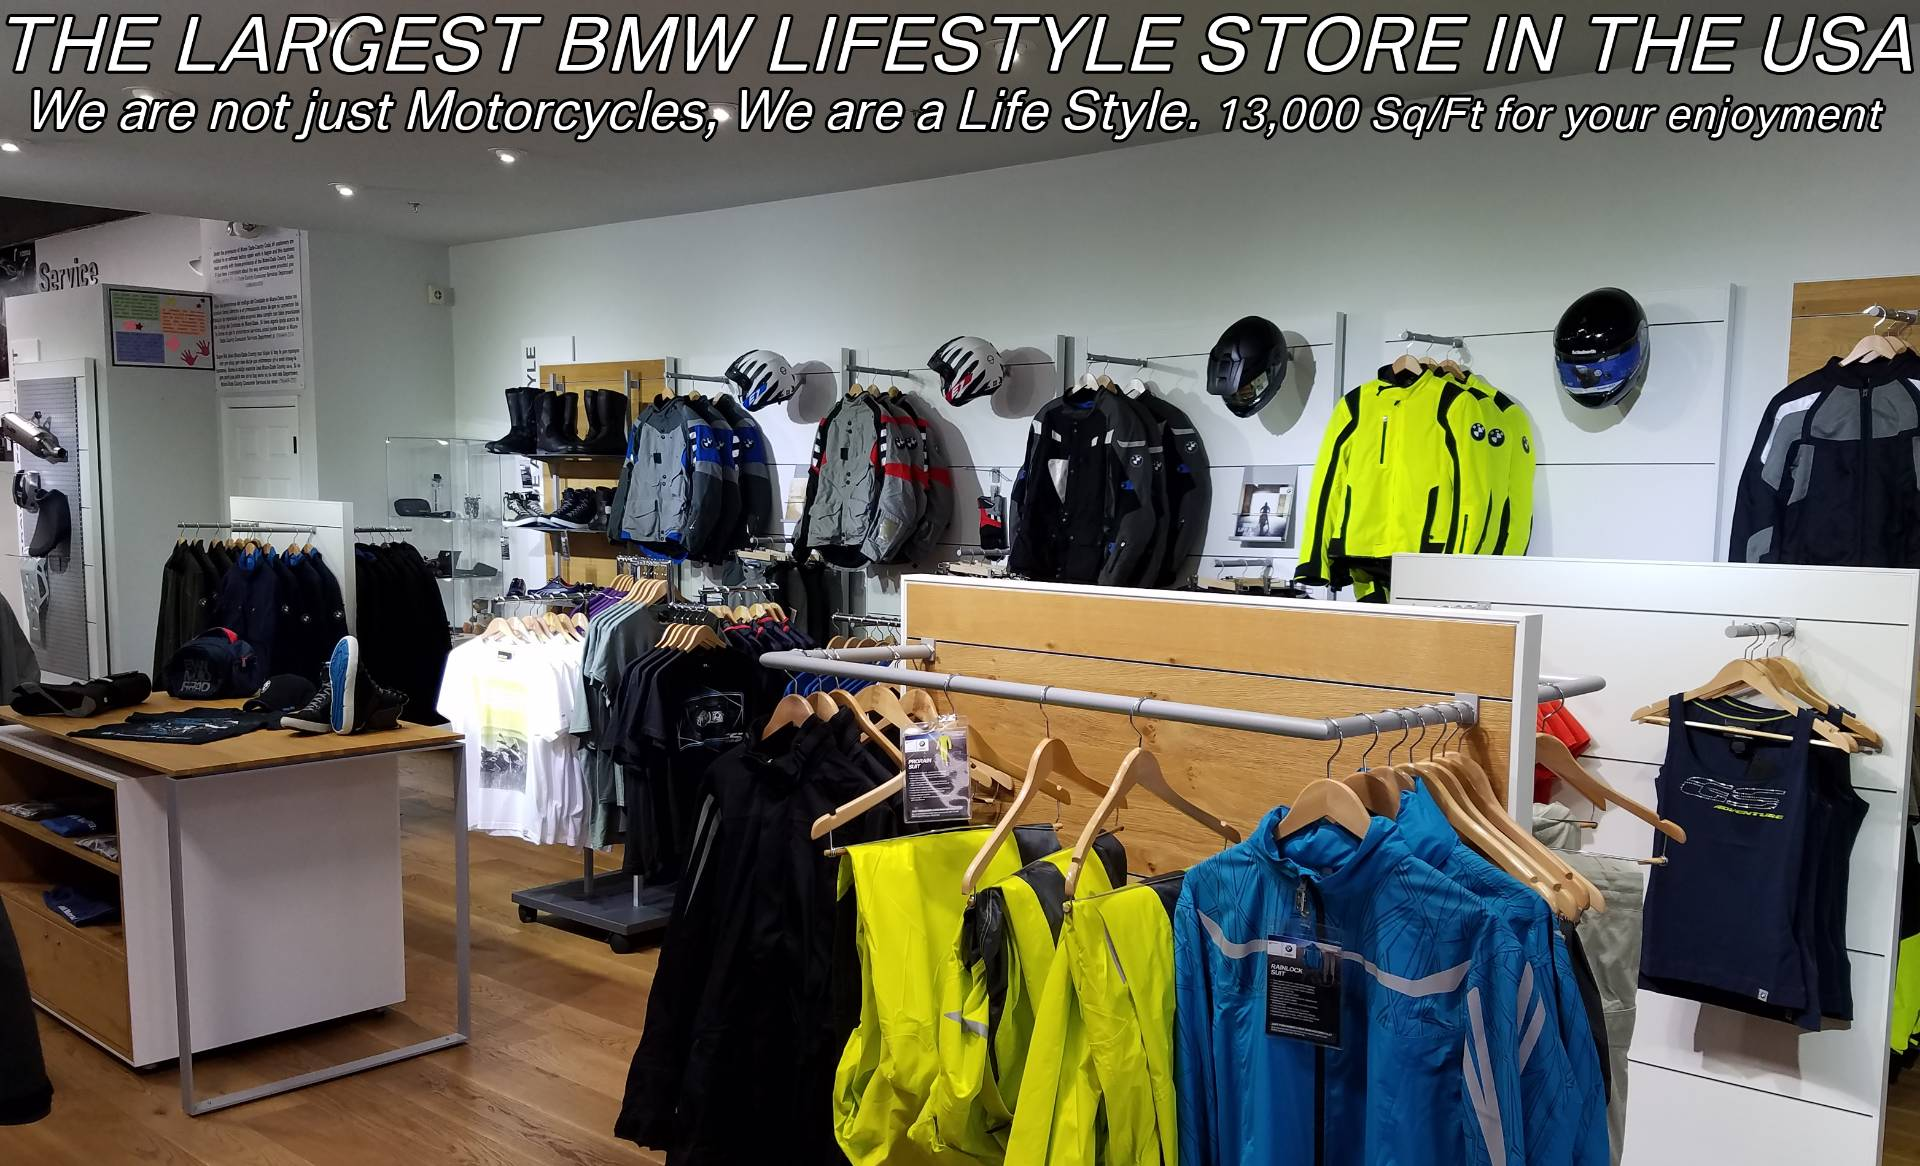 New 2019 BMW R 1250 GS for sale, BMW R 1250GS for sale, BMW Motorcycle GS, new BMW GS, Spirit of GS, BMW Motorcycles of Miami, Motorcycles of Miami, Motorcycles Miami, New Motorcycles, Used Motorcycles, pre-owned. #BMWMotorcyclesOfMiami #MotorcyclesOfMiami. - Photo 63